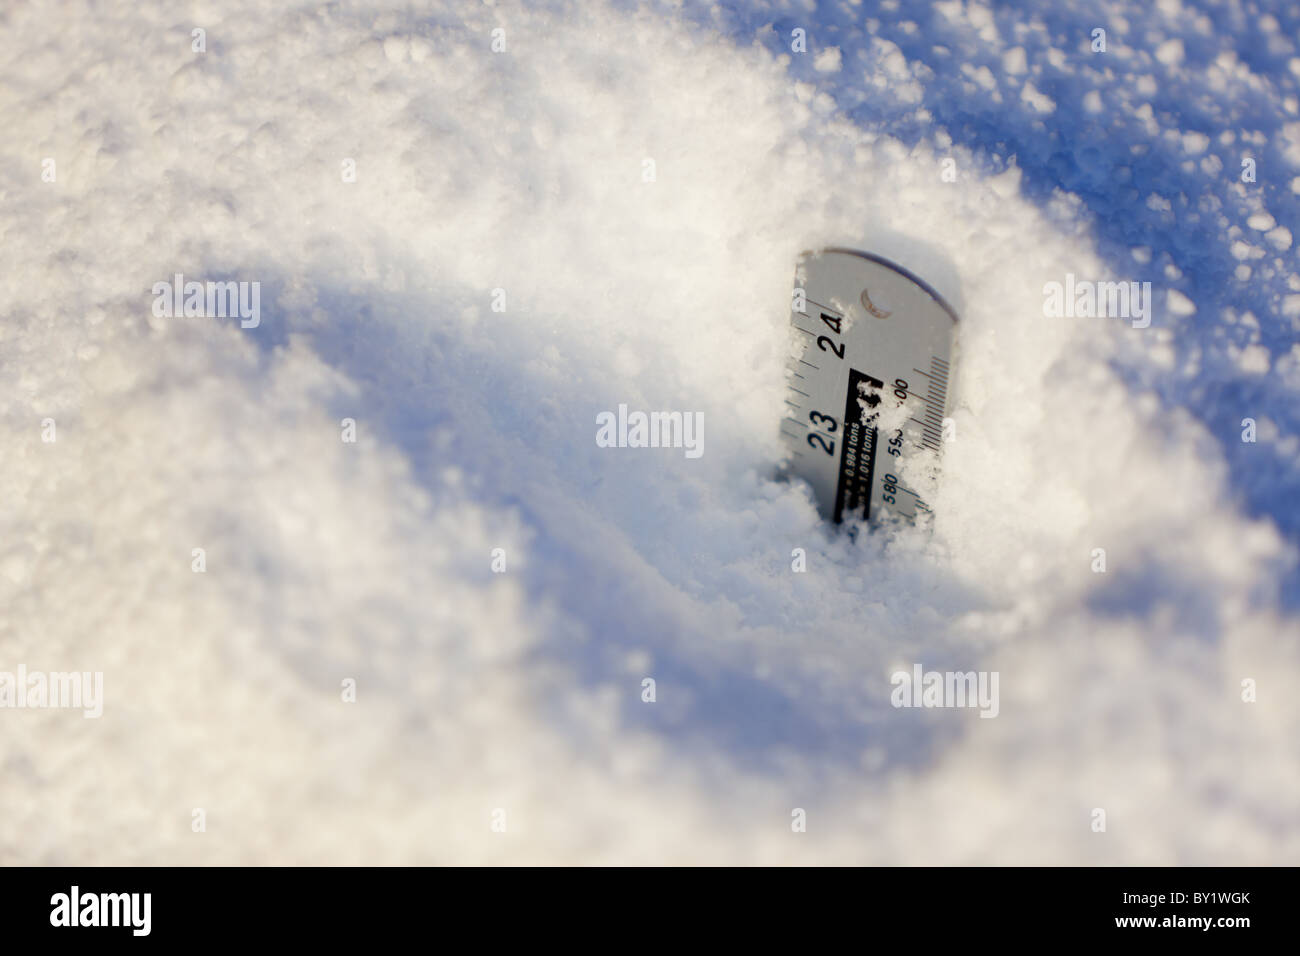 24 inches of snow - Stock Image